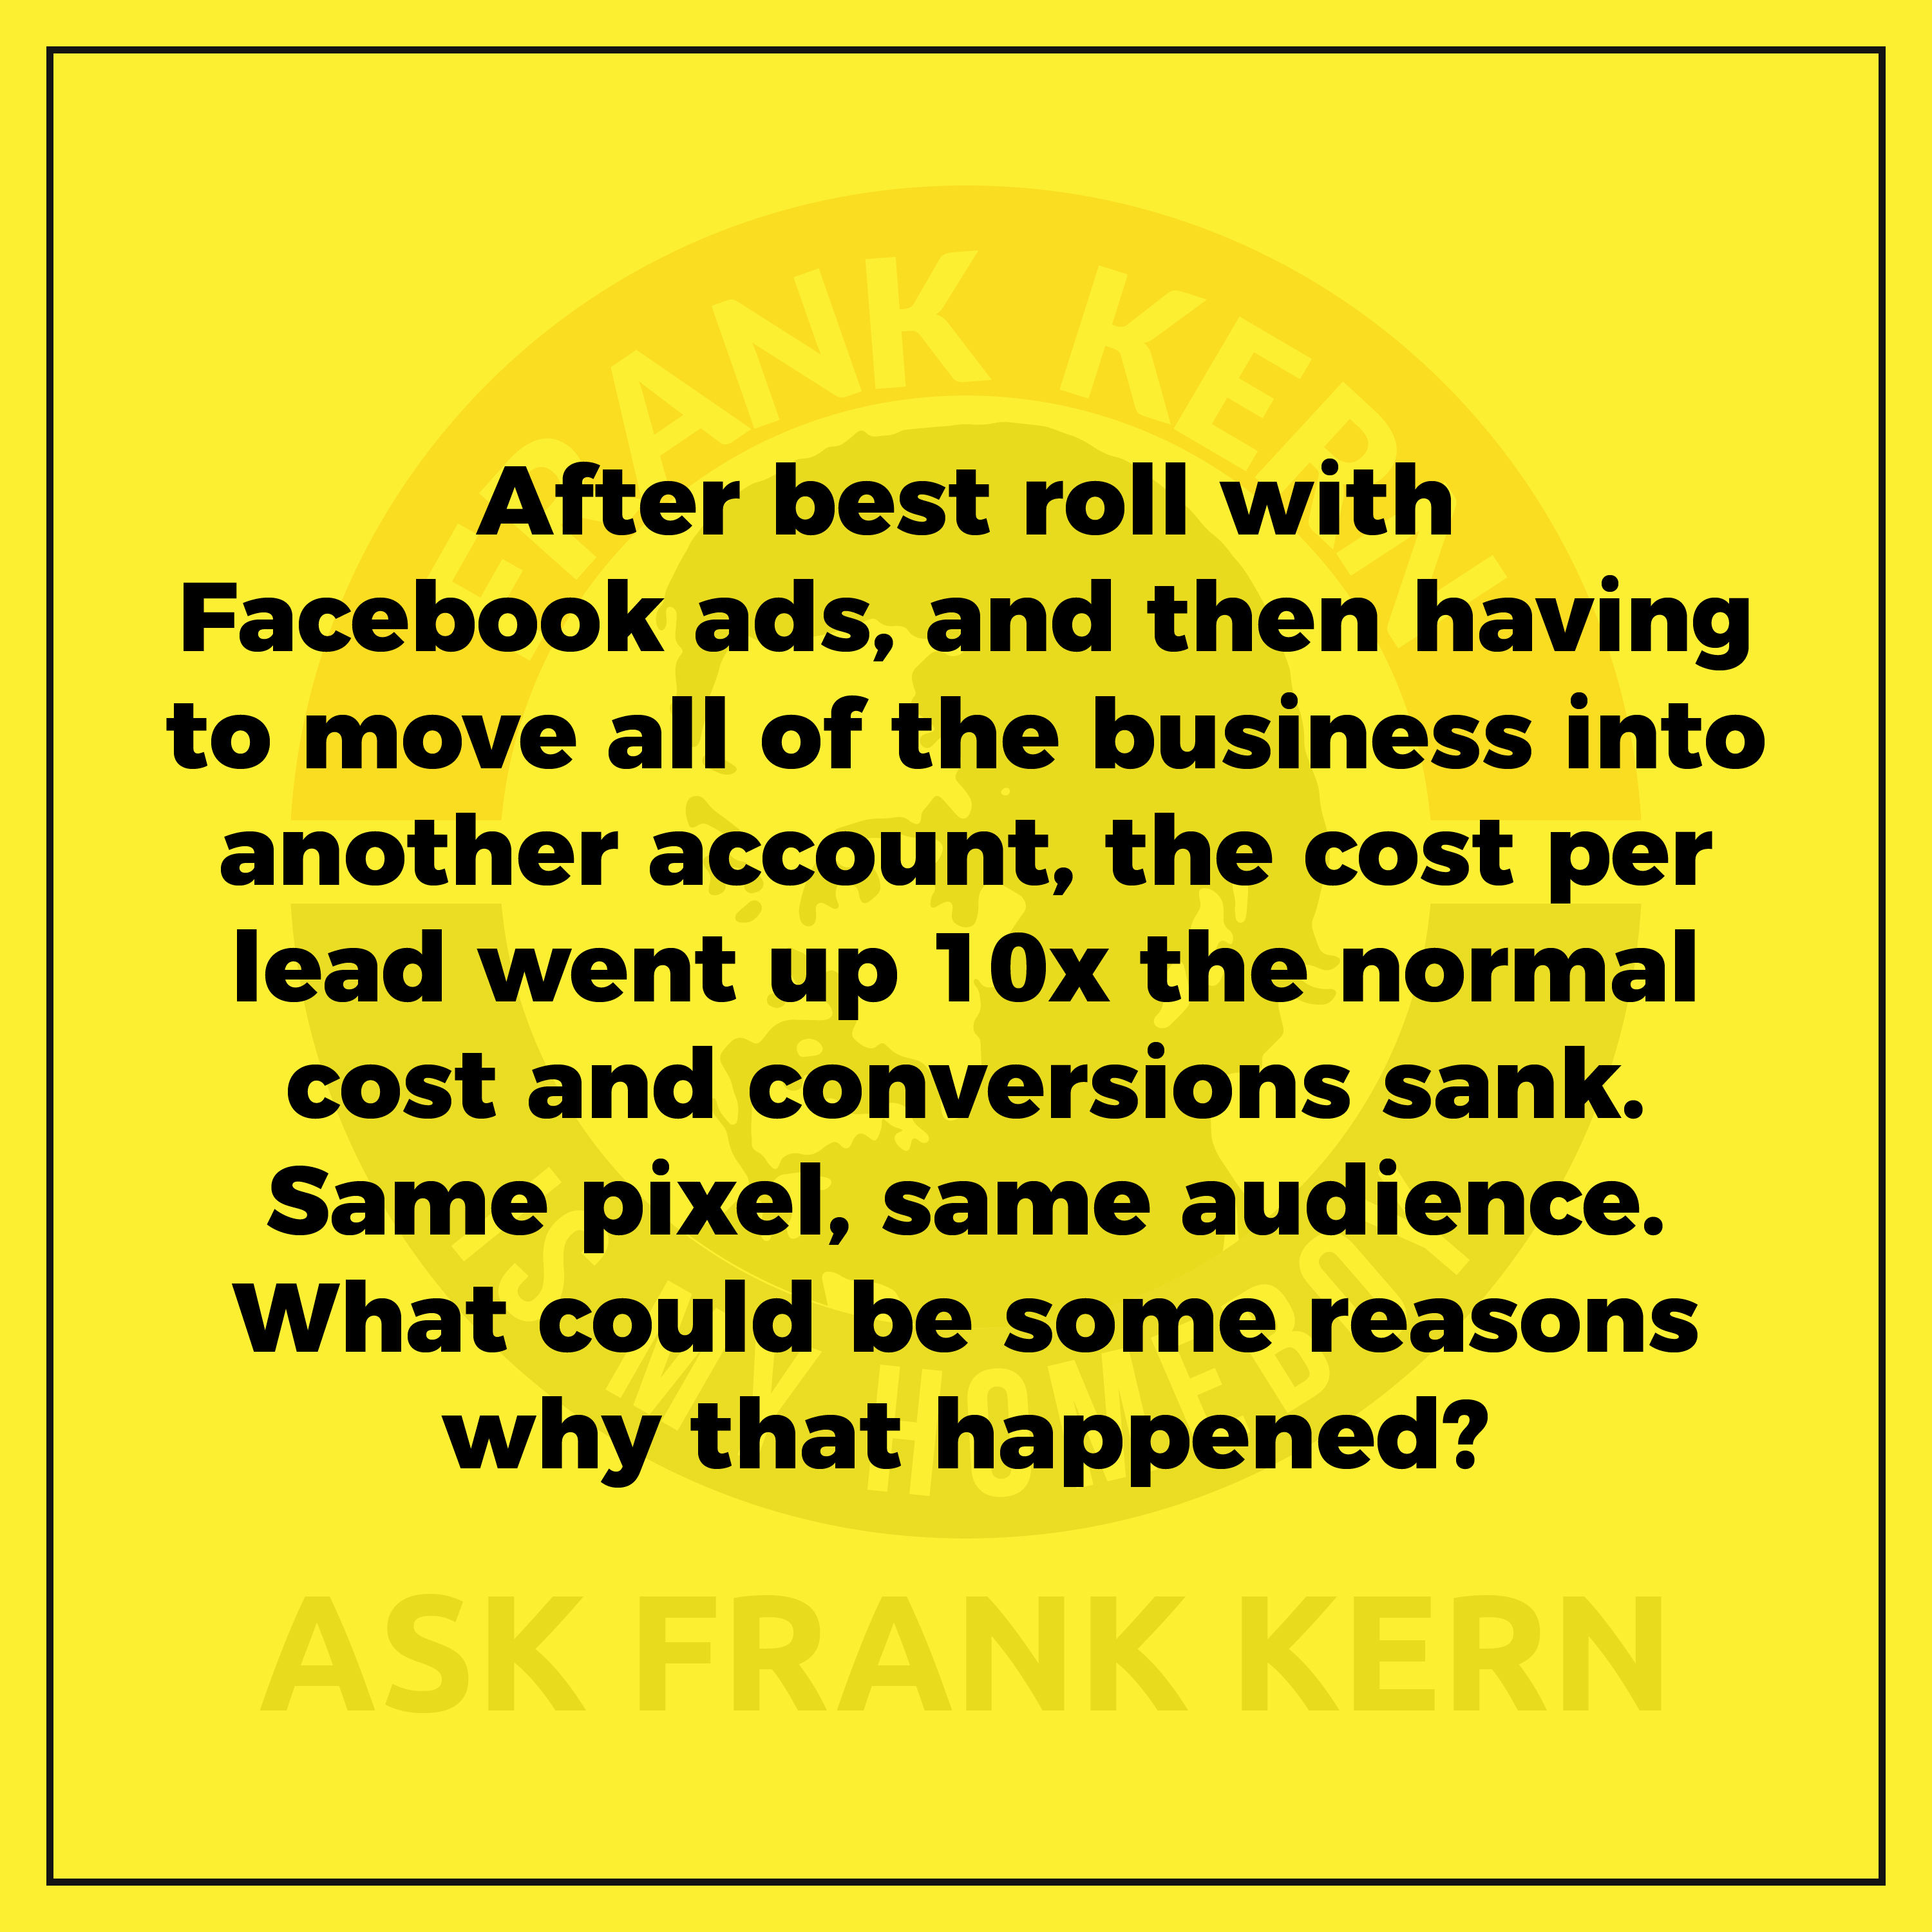 After best roll with Facebook ads, and then having to move all of the business into another account, the cost per lead went up 10x the normal cost and conversions sank. Same pixel, same audience. What could be some reasons why that happened?